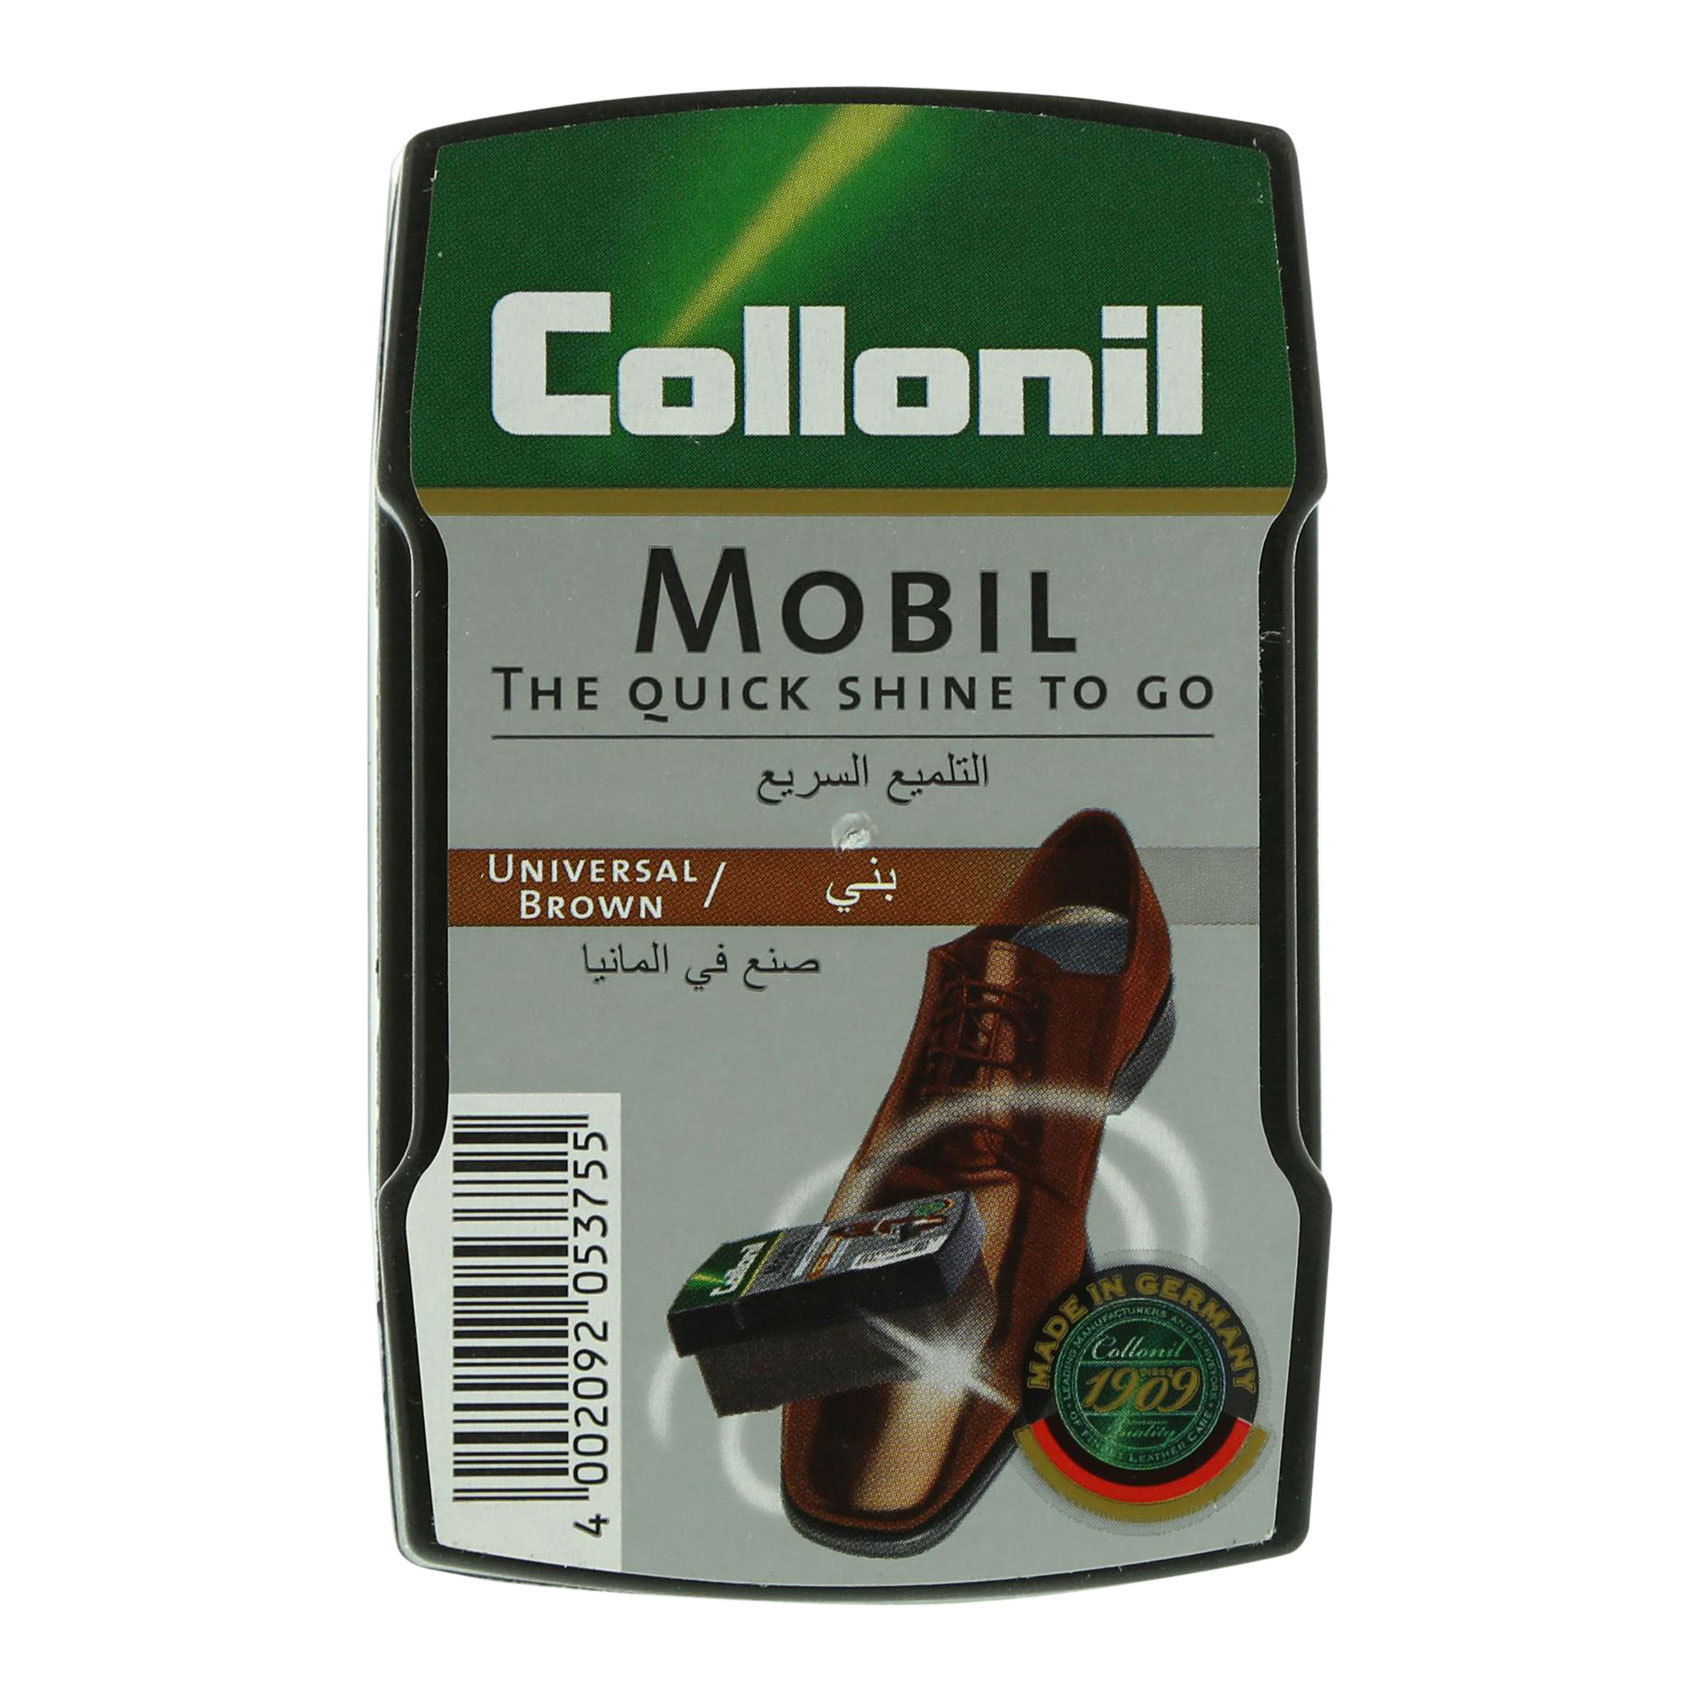 COLLONIL MOBIL SPONGE BROWN